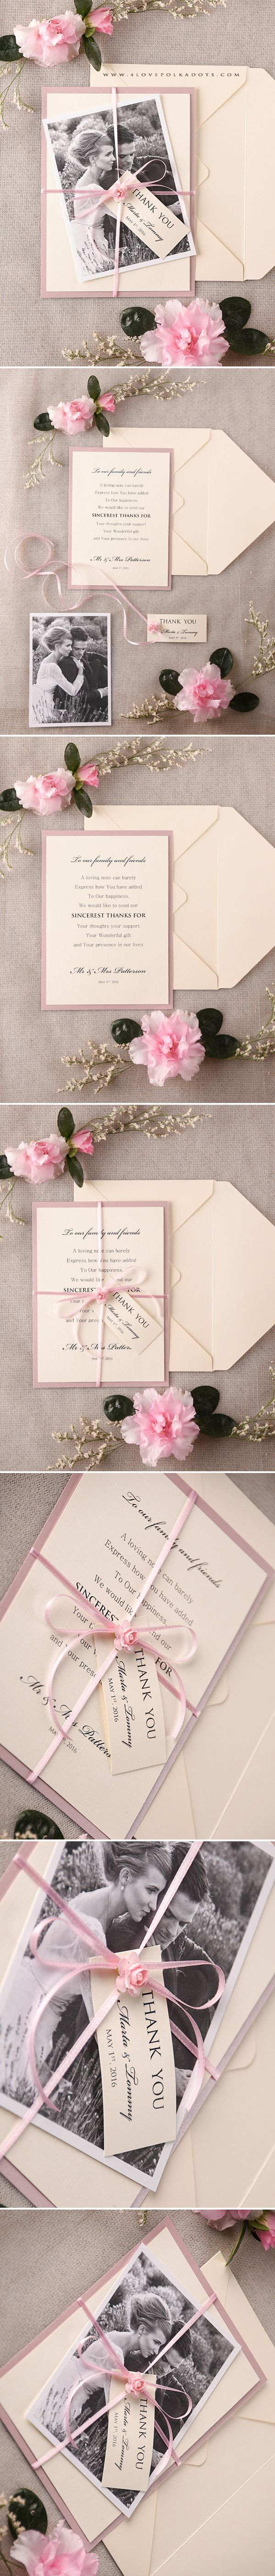 Wedding Thank You Card with Your Photo #weddingideas #pink #cream #summerwedding